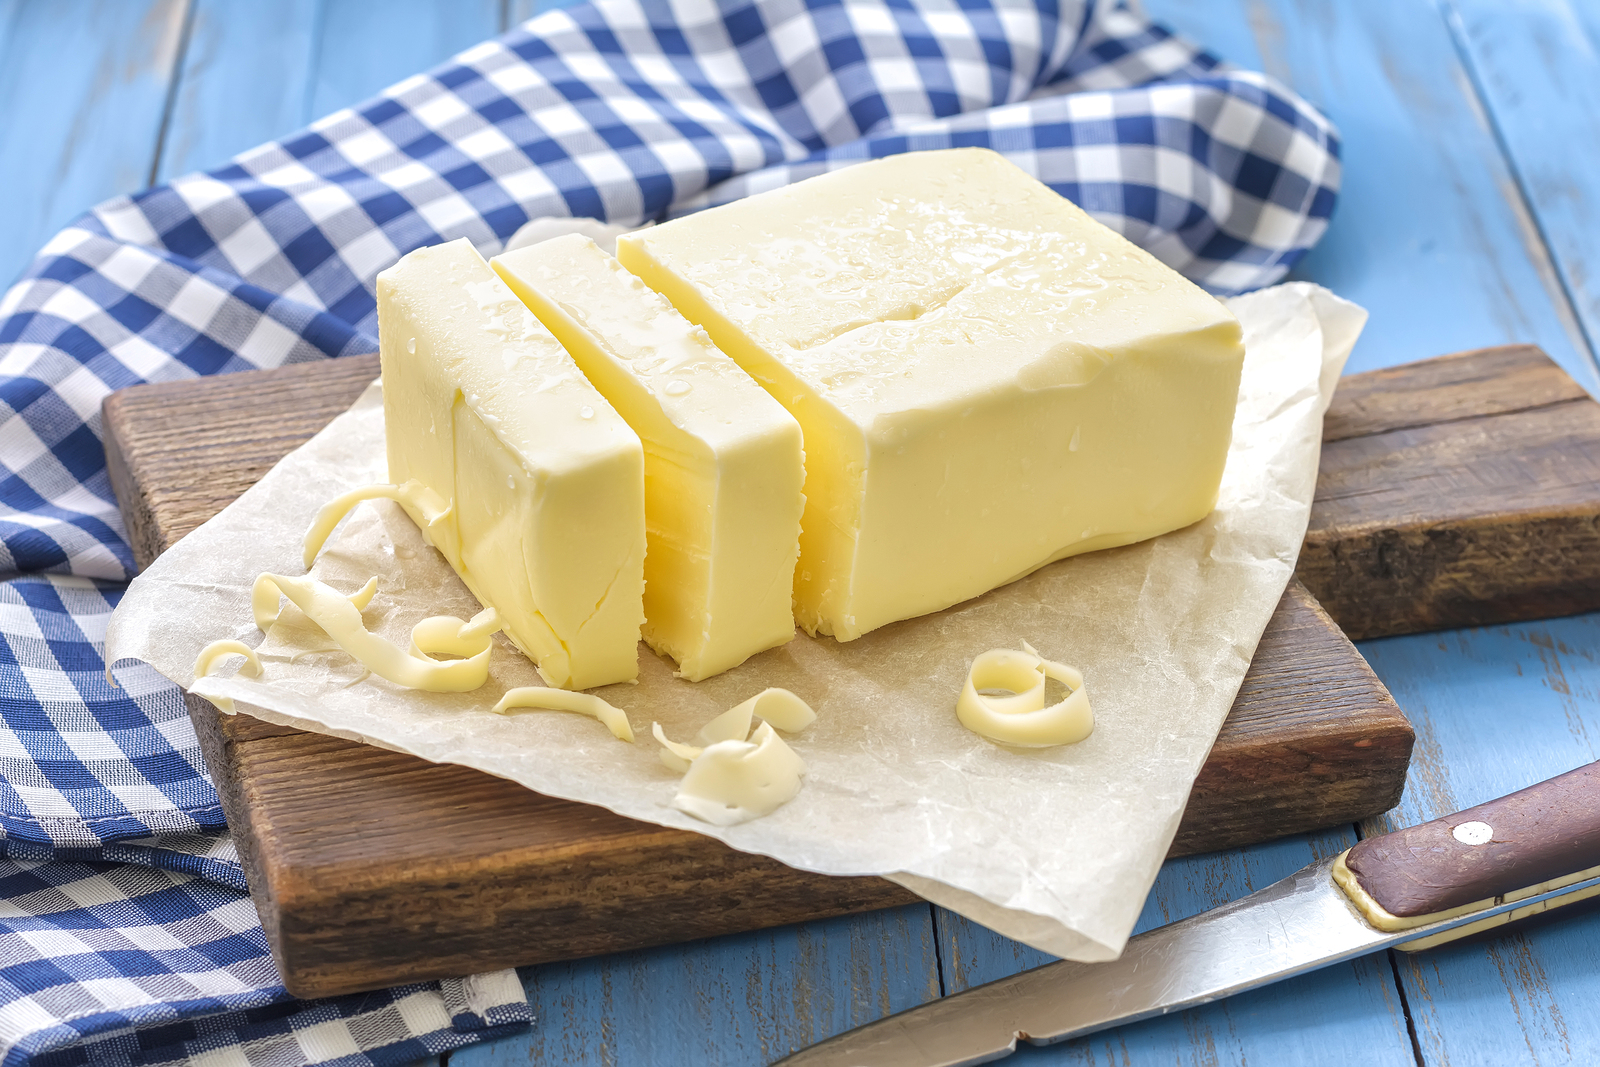 Butter is a rich source of butyric acid; scientifically shown to reduce inflammation in gut and increase mitochondrial health (our energy producers). A healthy gut bacteria flora naturally produces vast amounts of butyric acid due to its critical health functions in body.